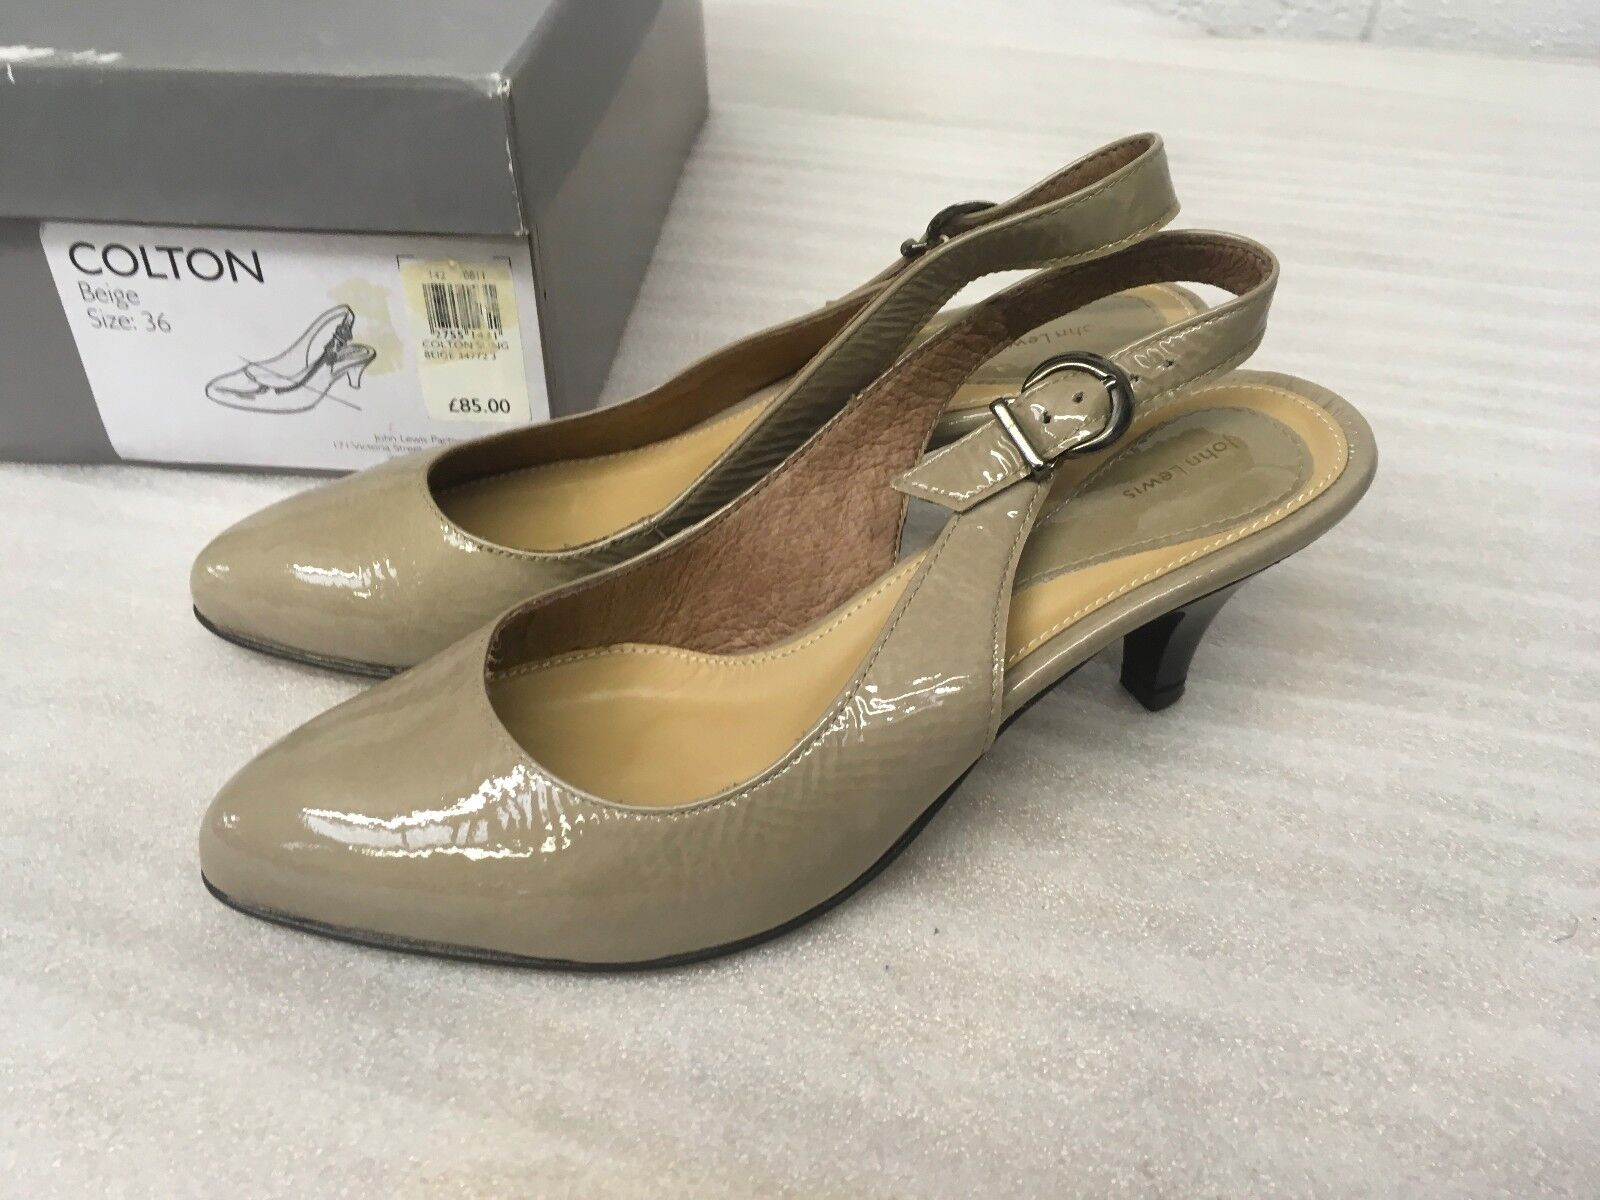 JOHN LEWIS WOMEN'S COLTON BEIGE PATENT SHOES SIZE 3 36 NEW RRP £85 JLA4